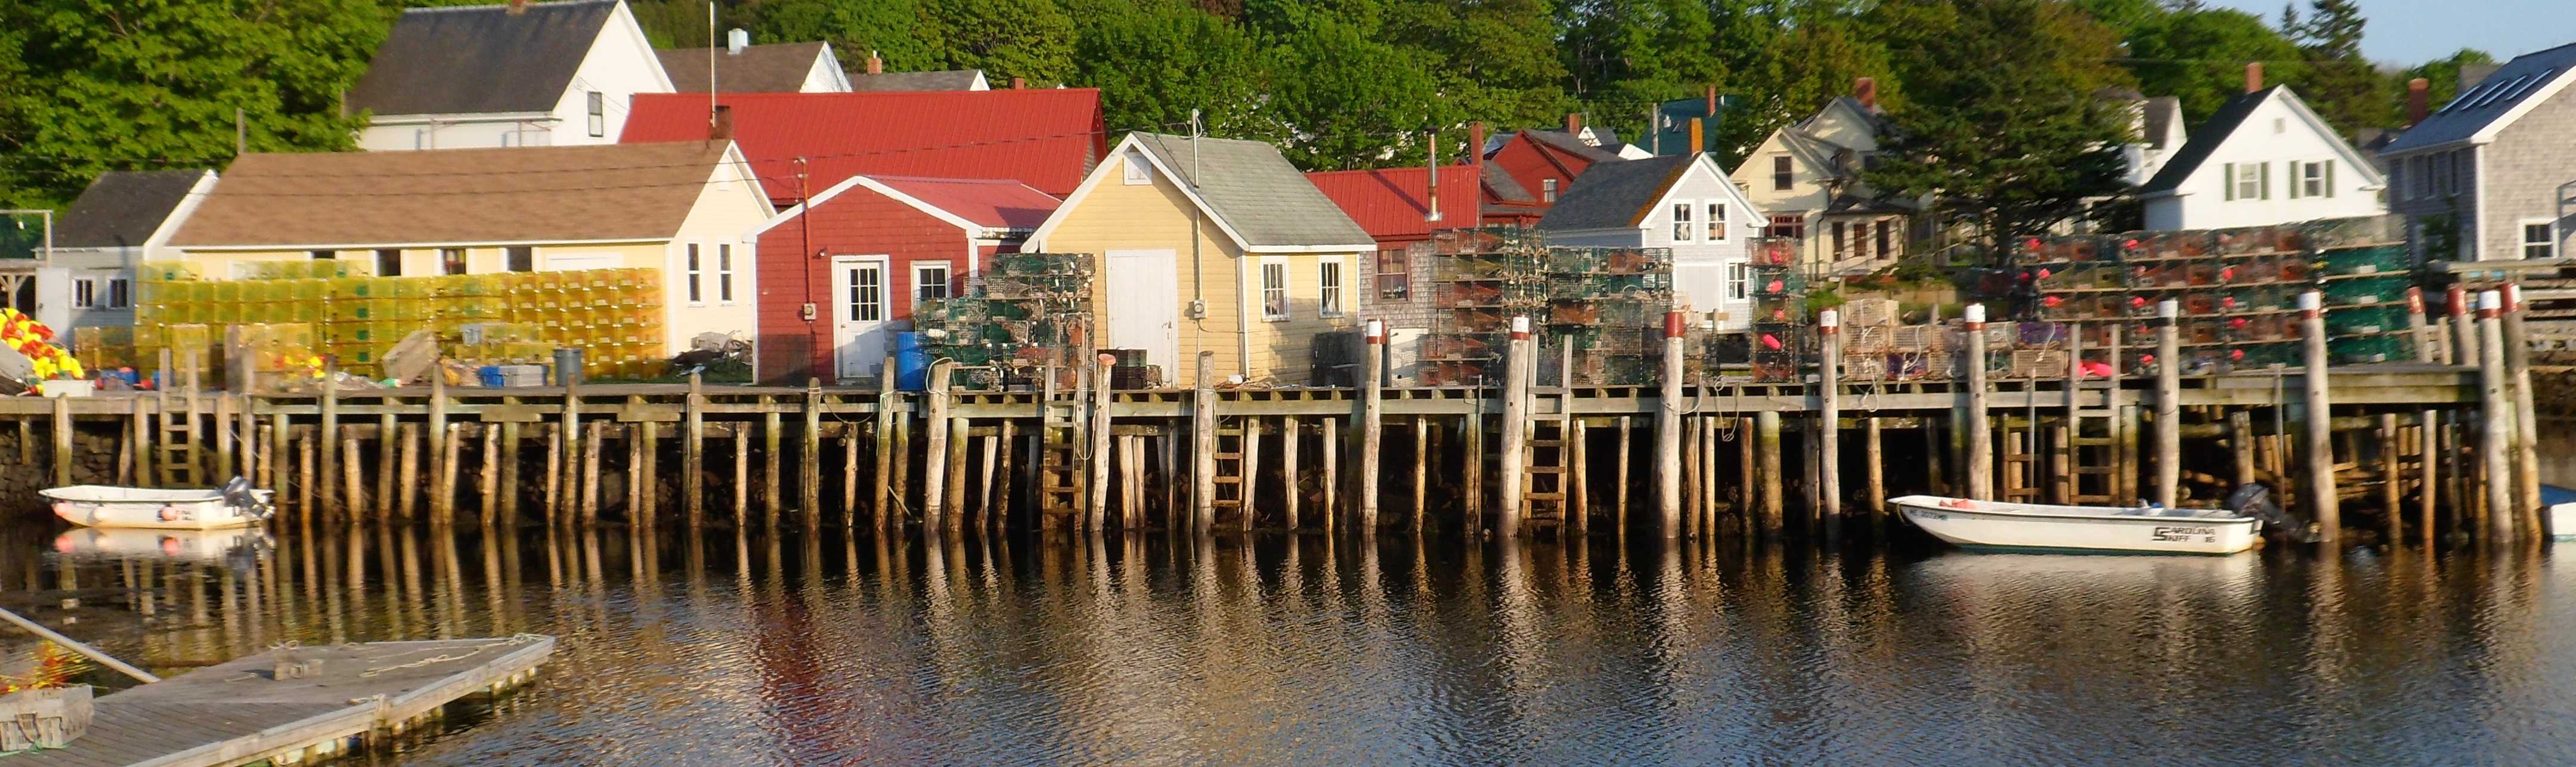 haven celebrating for living and maine vinalhaven homes cottages island estate sale waterfront real north